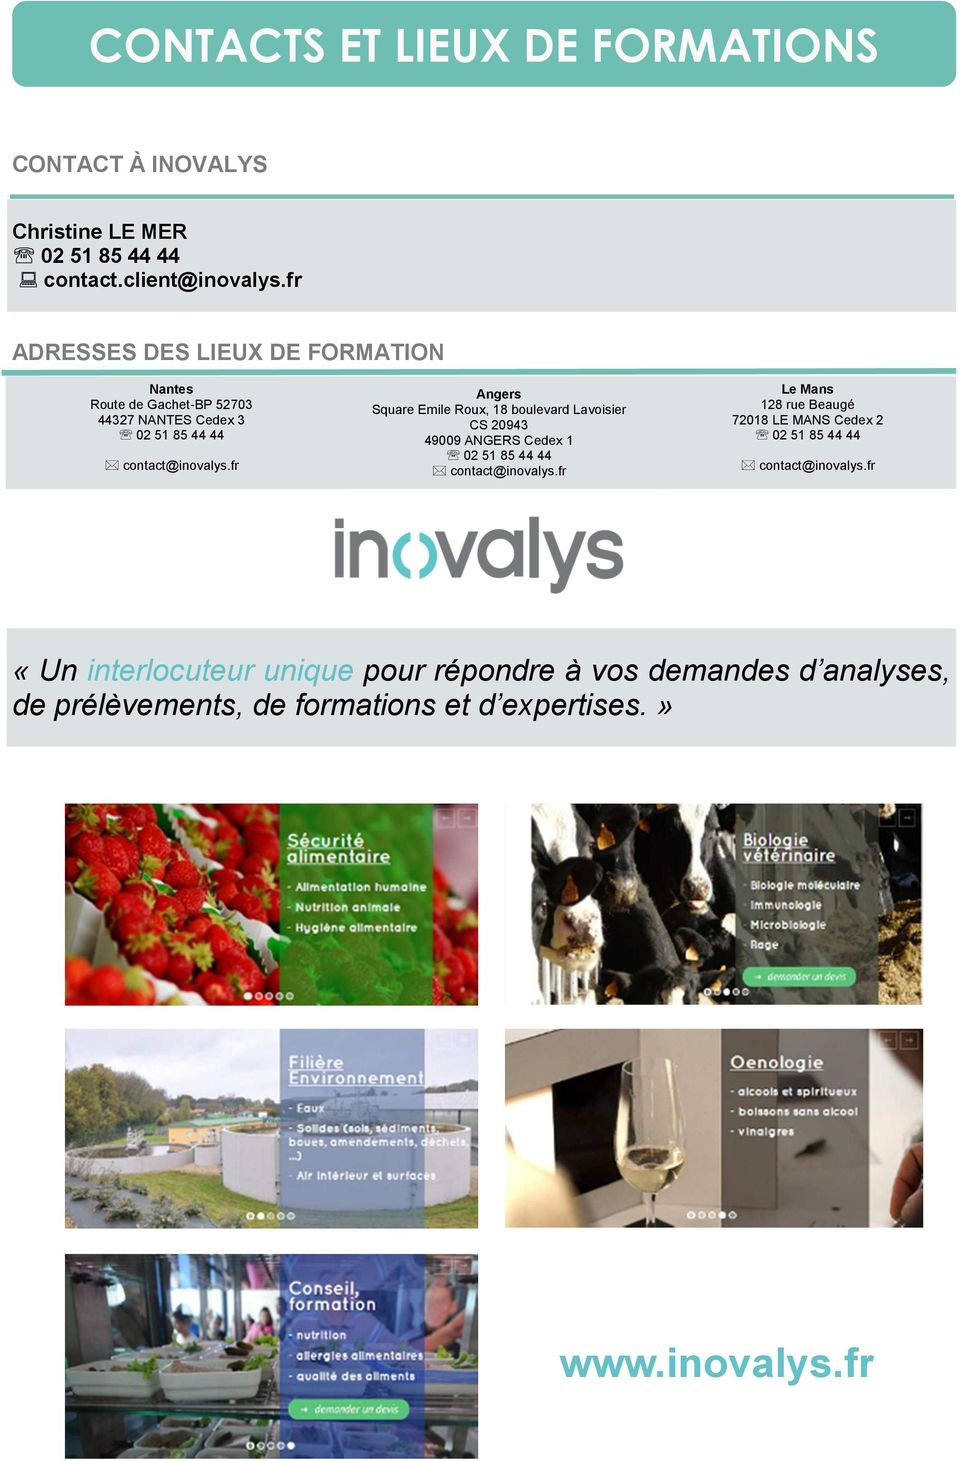 fr Angers Square Emile Roux, 18 boulevard Lavoisier CS 20943 49009 ANGERS Cedex 1 02 51 85 44 44 contact@inovalys.